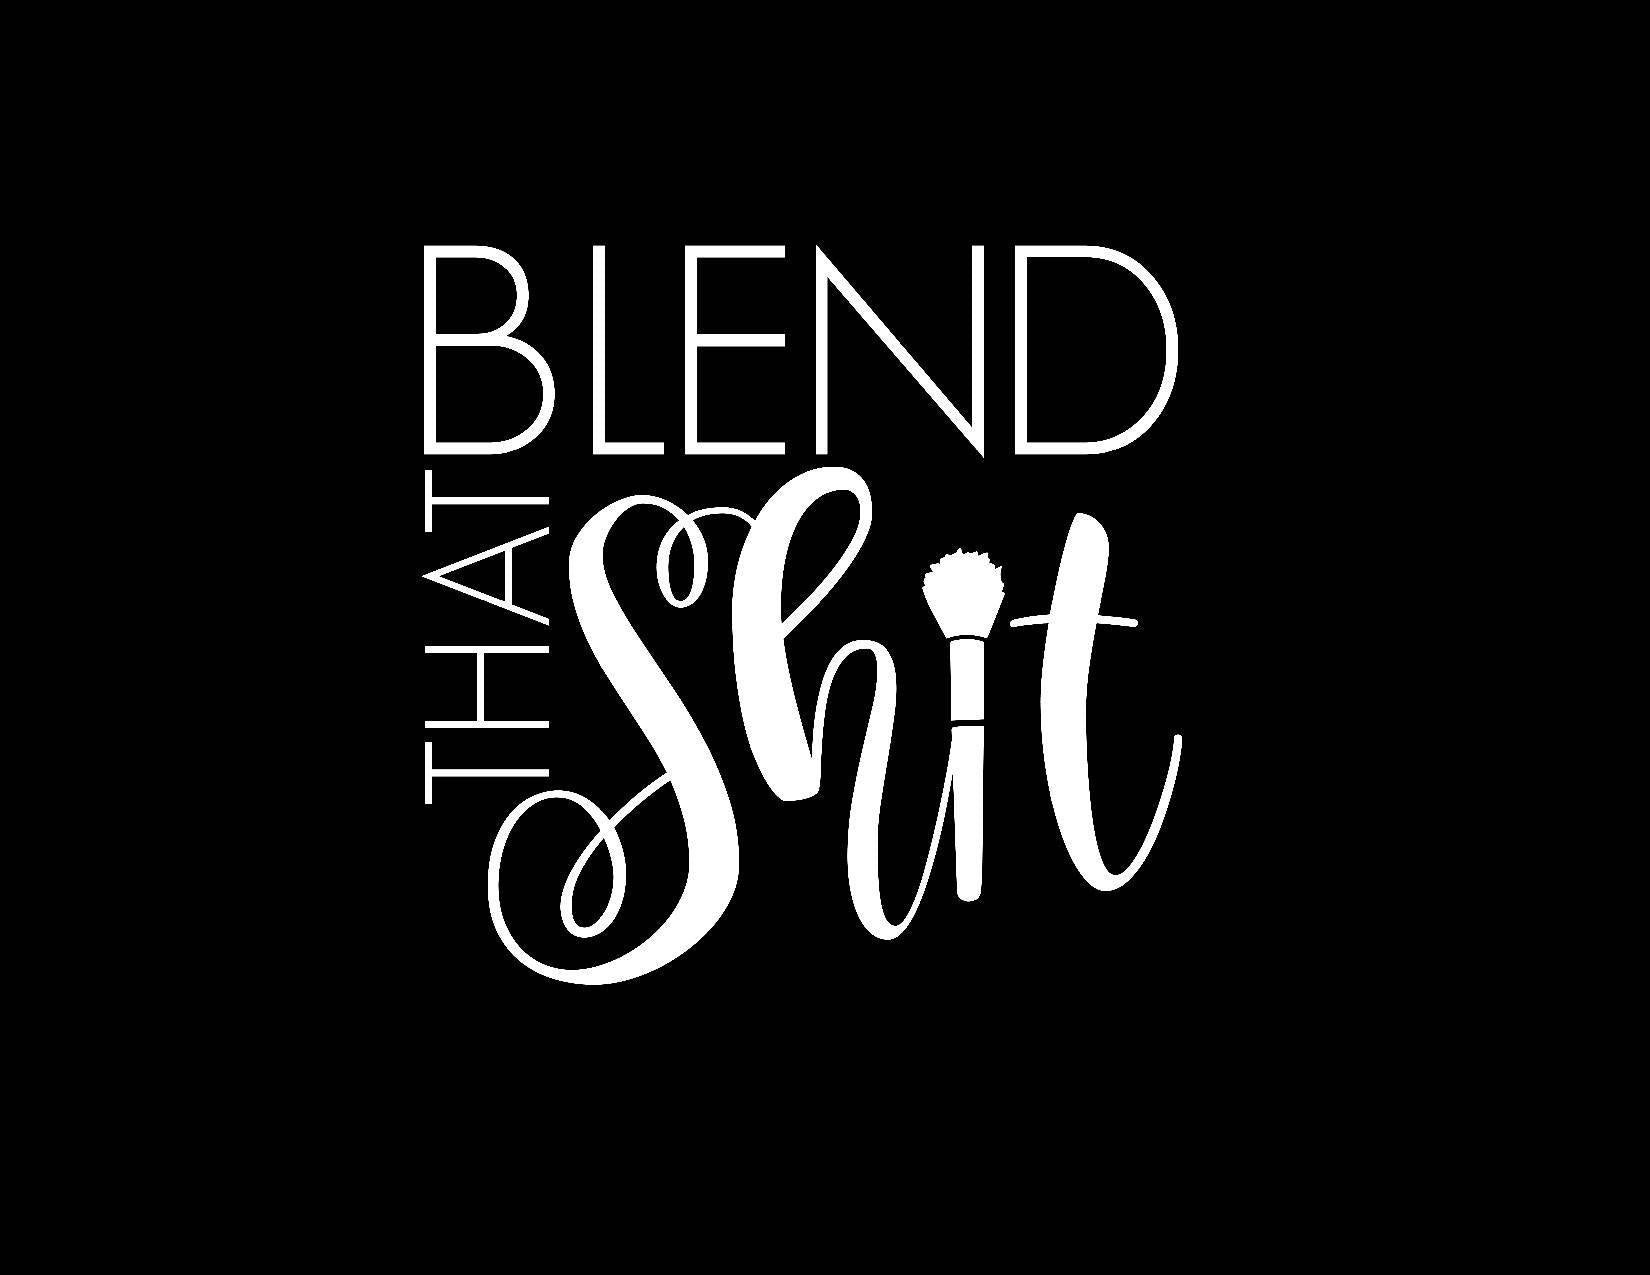 Blend That Shit Vinyl Decal Sticker Makeup Case Decal